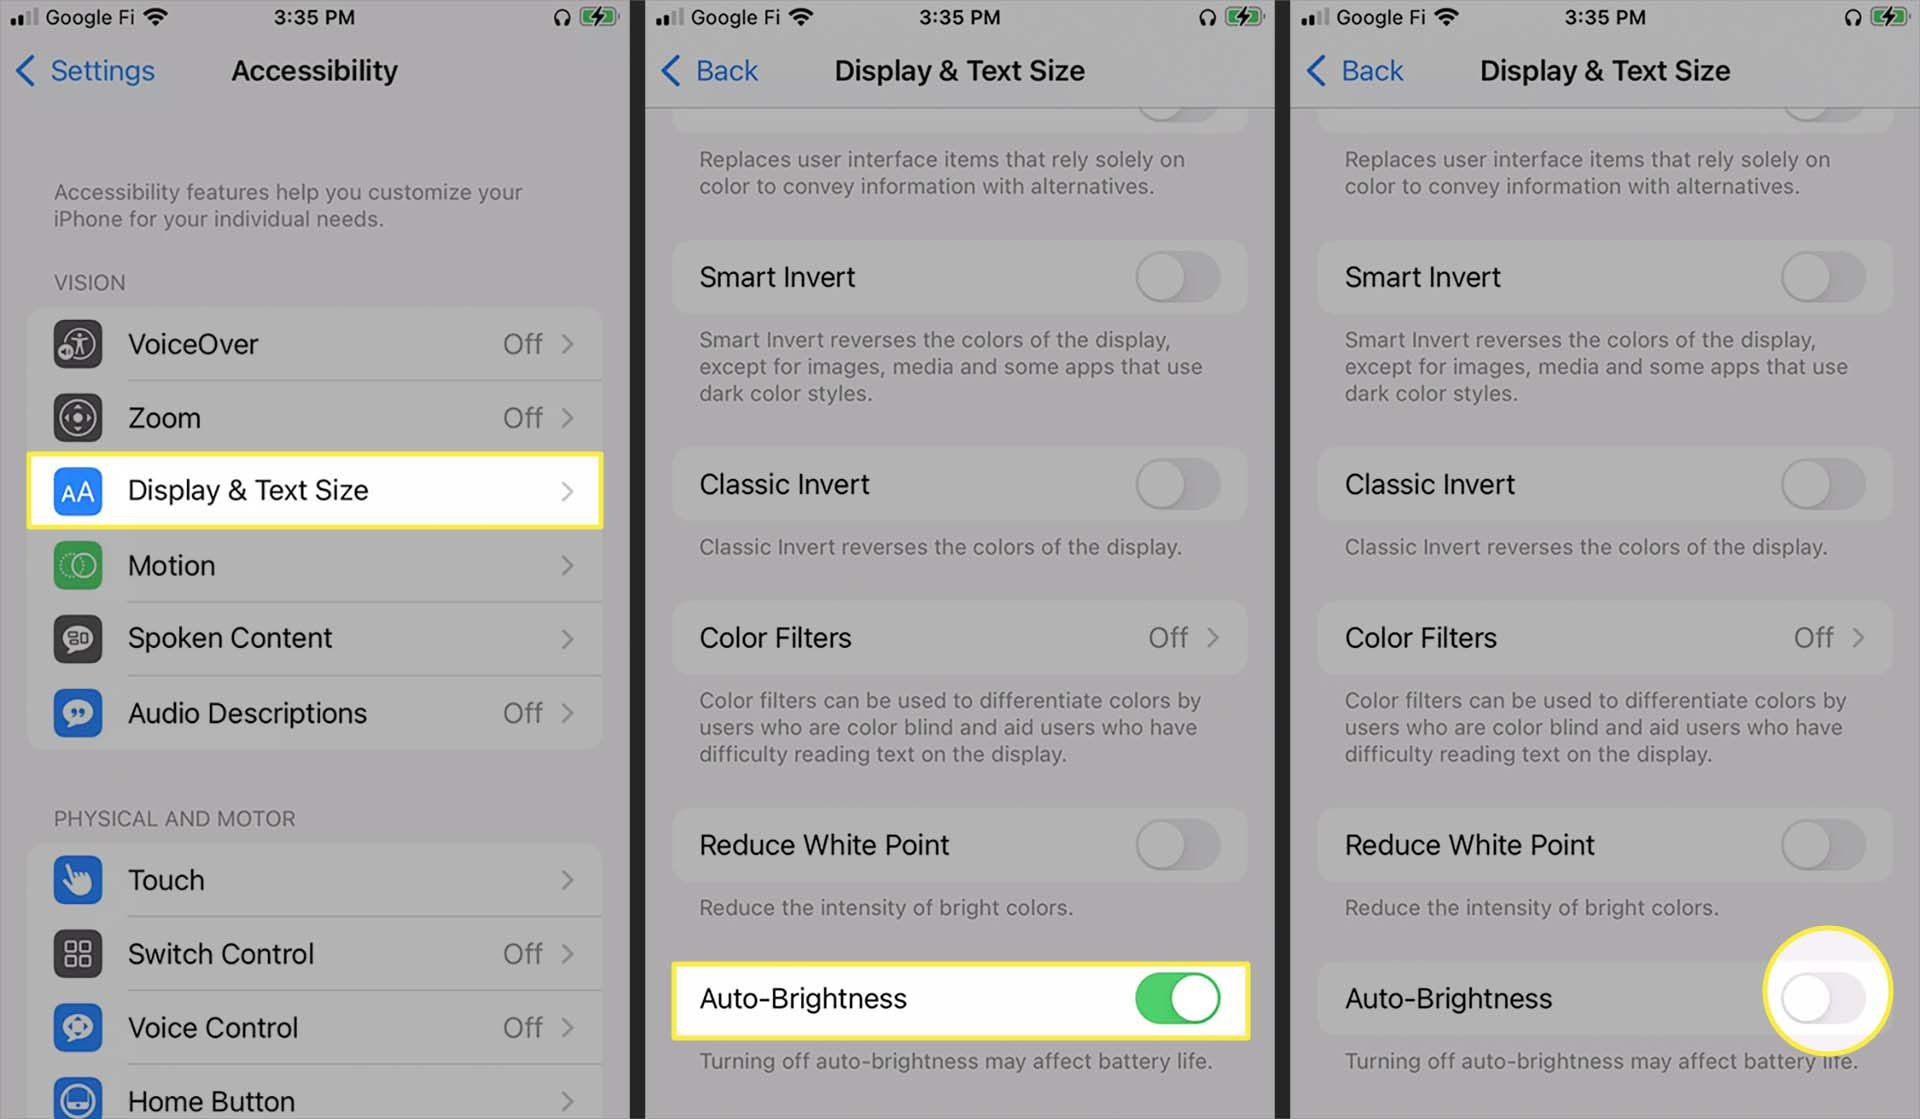 Disabling auto-brightness from Display & Text Size options in the iOS Accessibility menu.